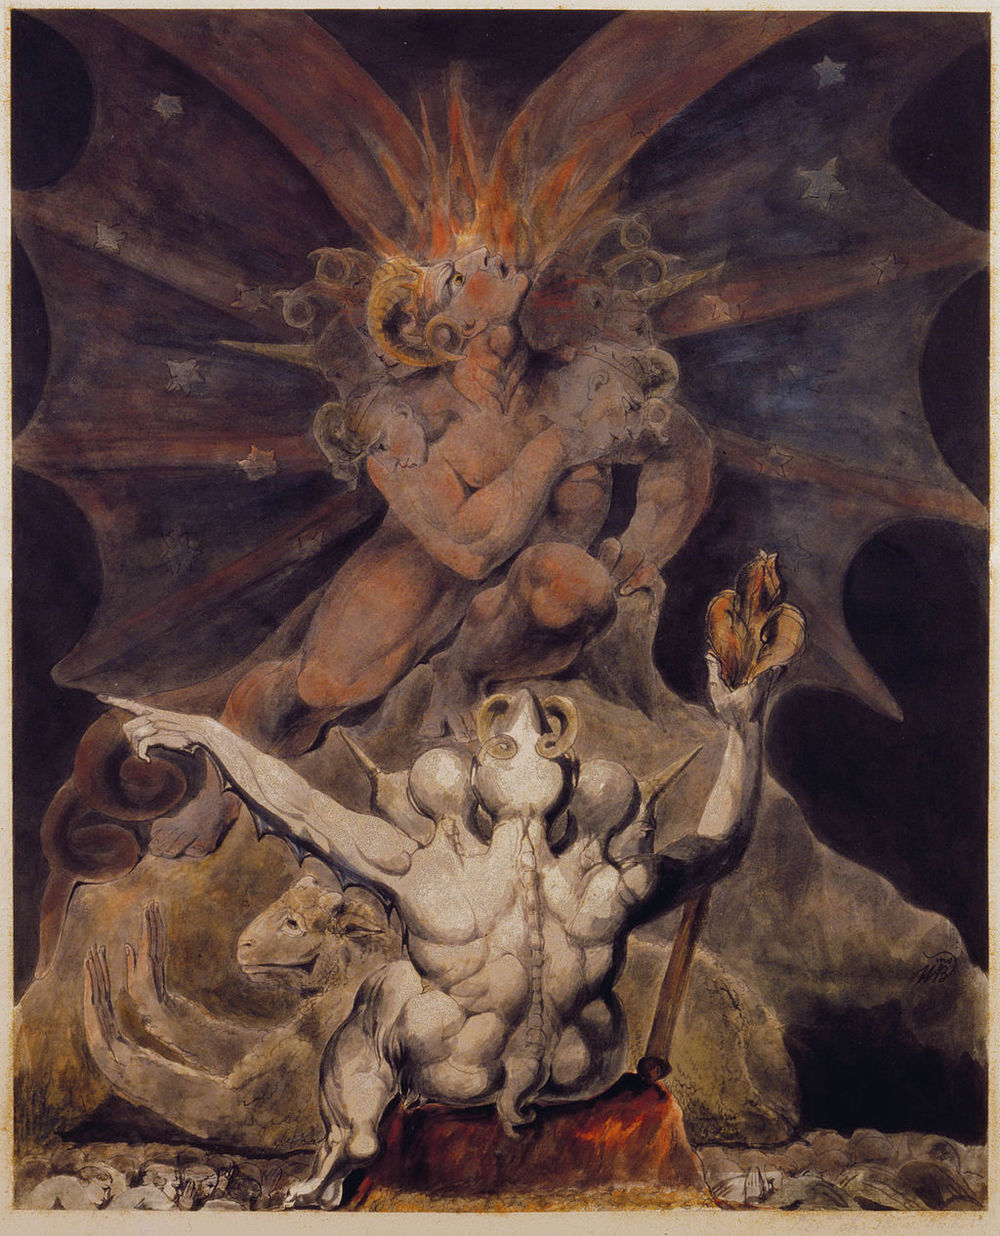 William Blake,  The Number of the Beast is 666  (early 1800s). Maybe a bit weird.  Elijah Goldsmith's dreams  had nothing on William Blake's.